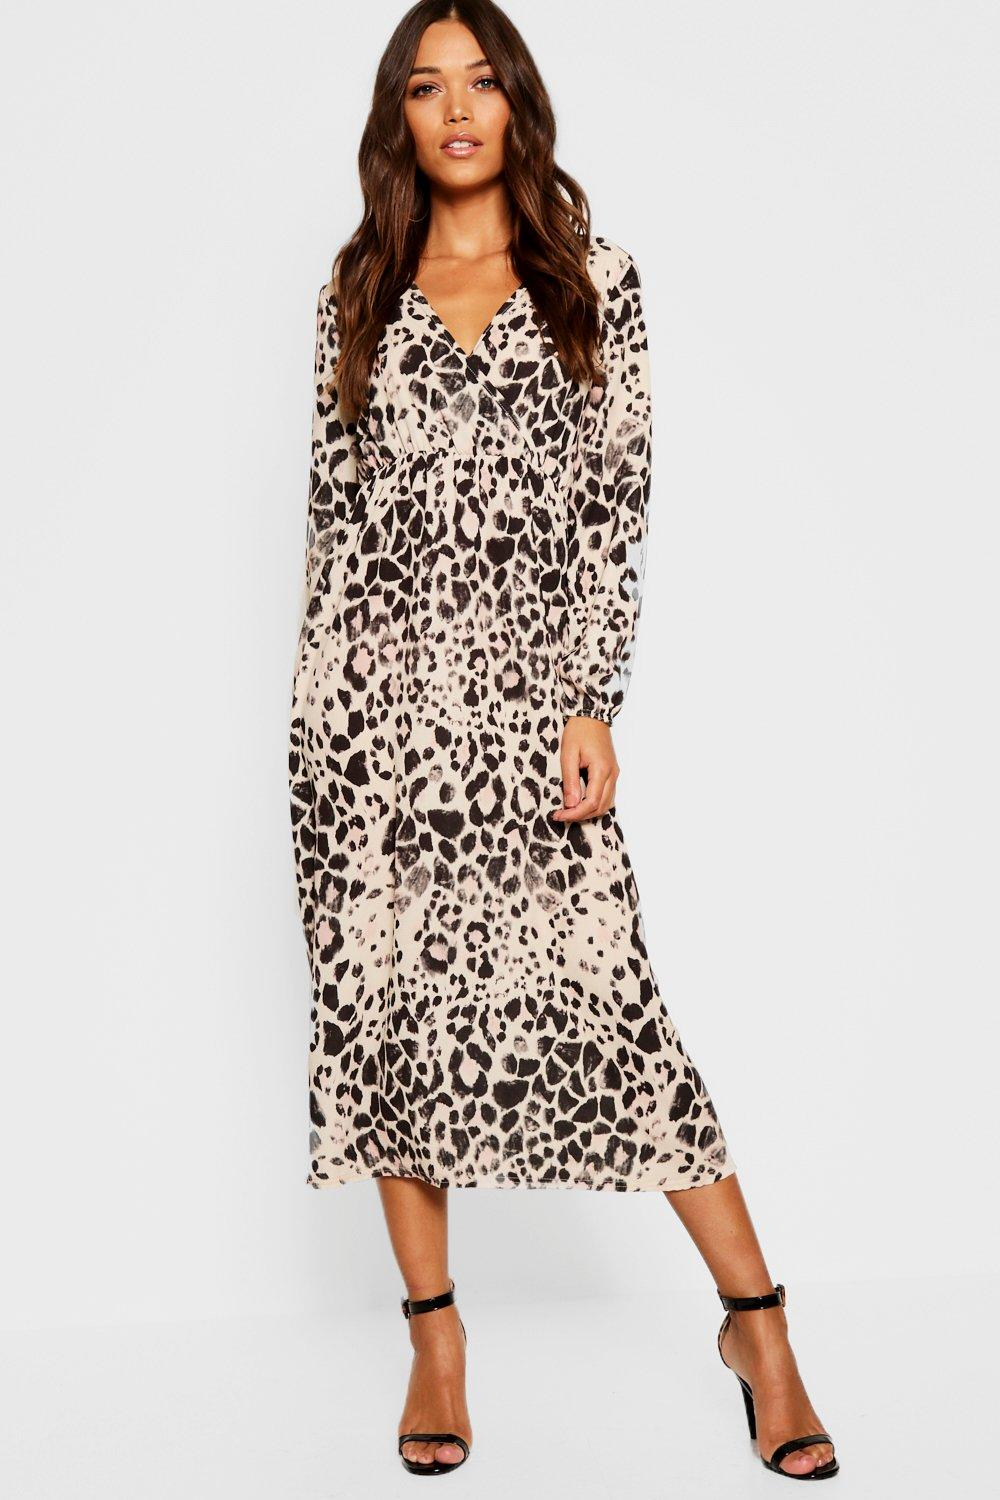 456f5a856f5b Womens Brown Leopard Print Long Sleeved Bodycon Midi Dress. Hover to zoom